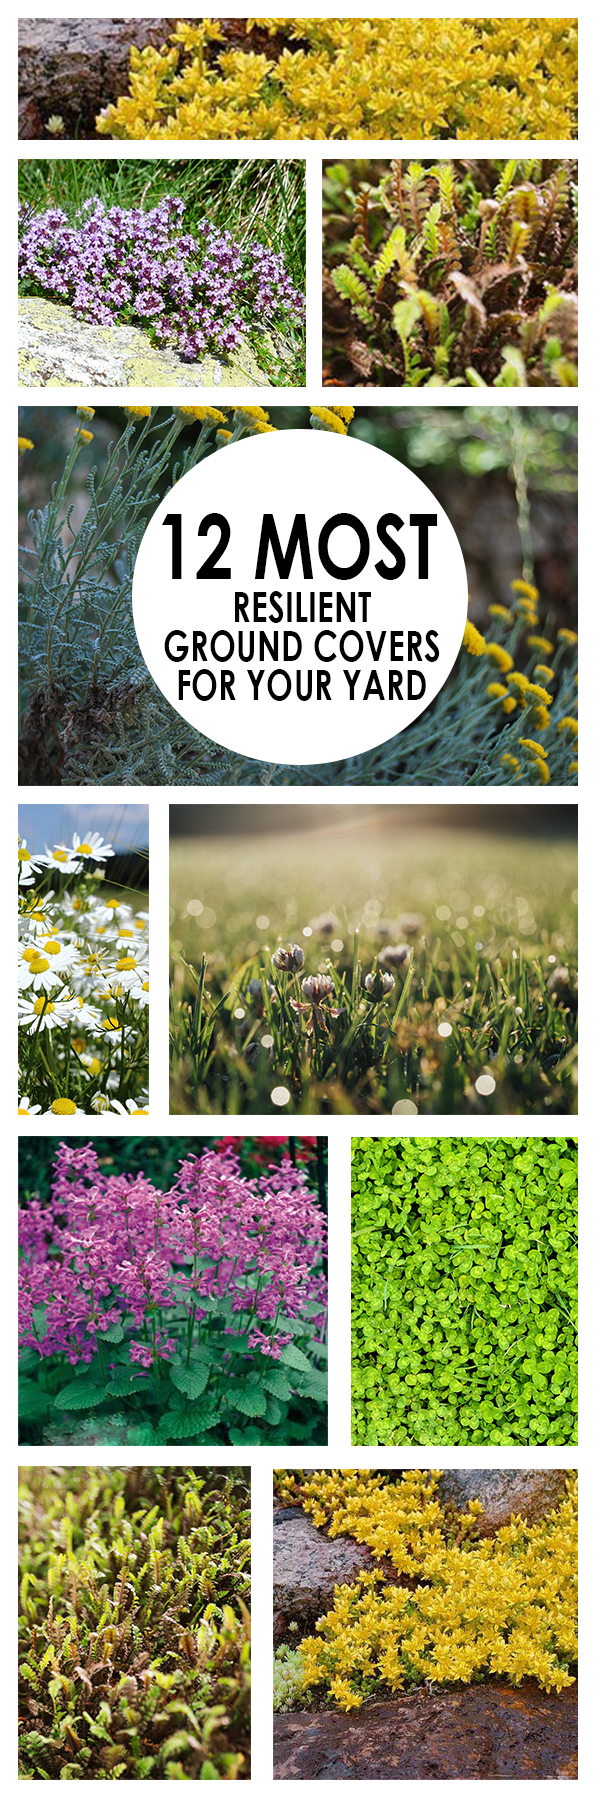 resilient ground covers